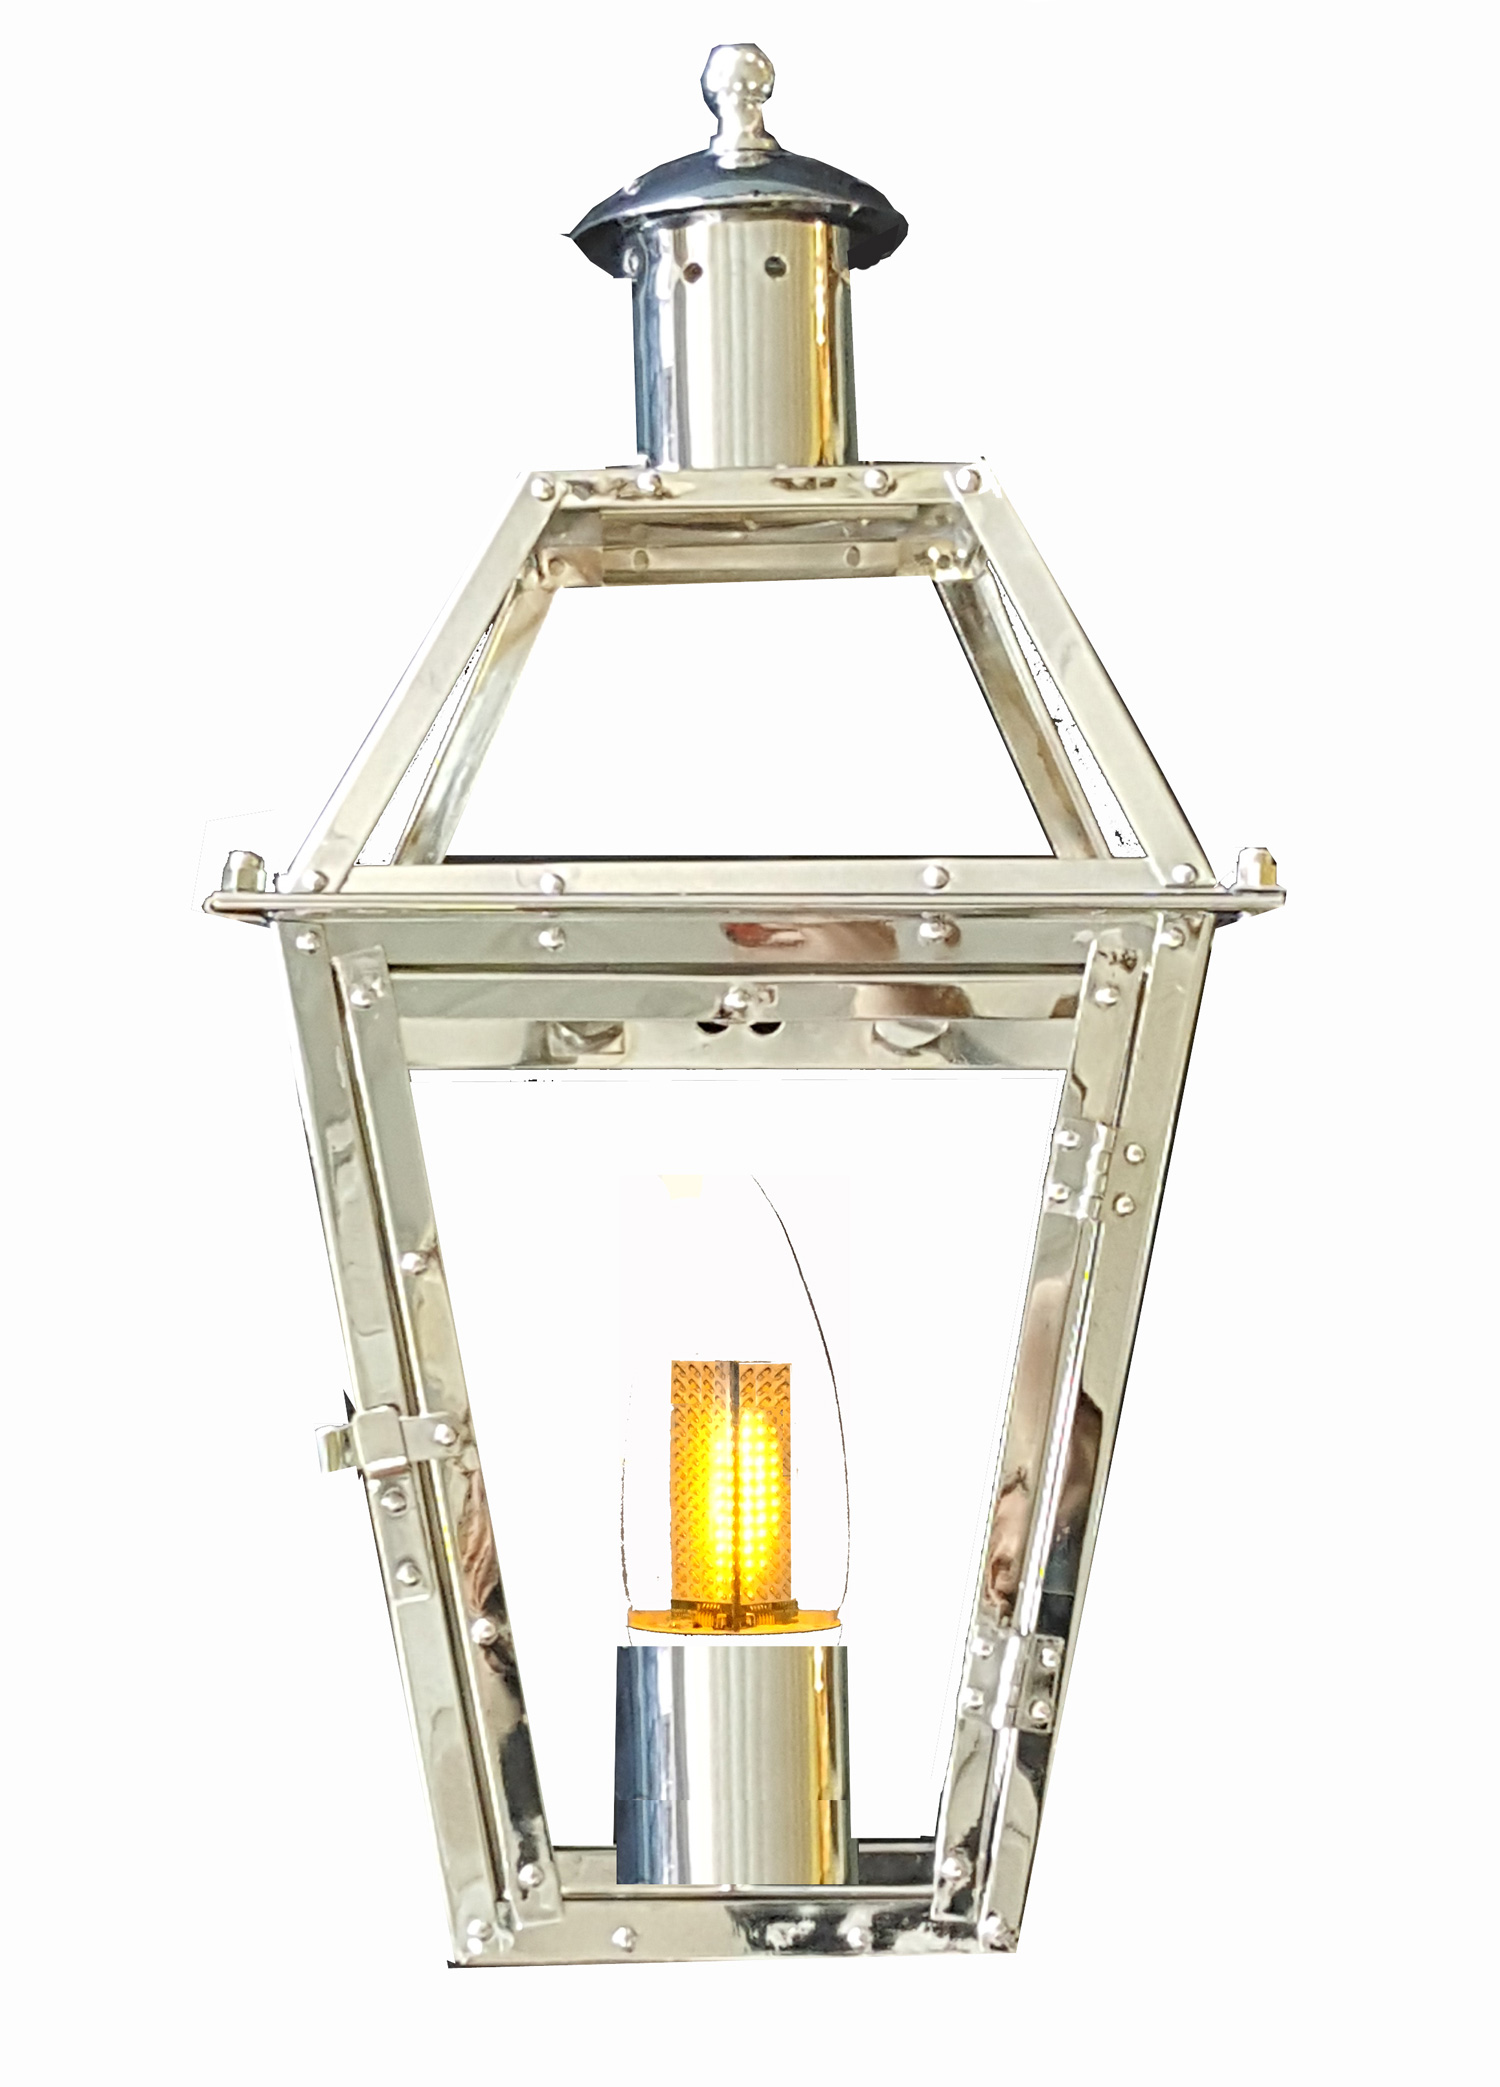 chrome plated 24 french quarter lantern new orleans gas lights. Black Bedroom Furniture Sets. Home Design Ideas